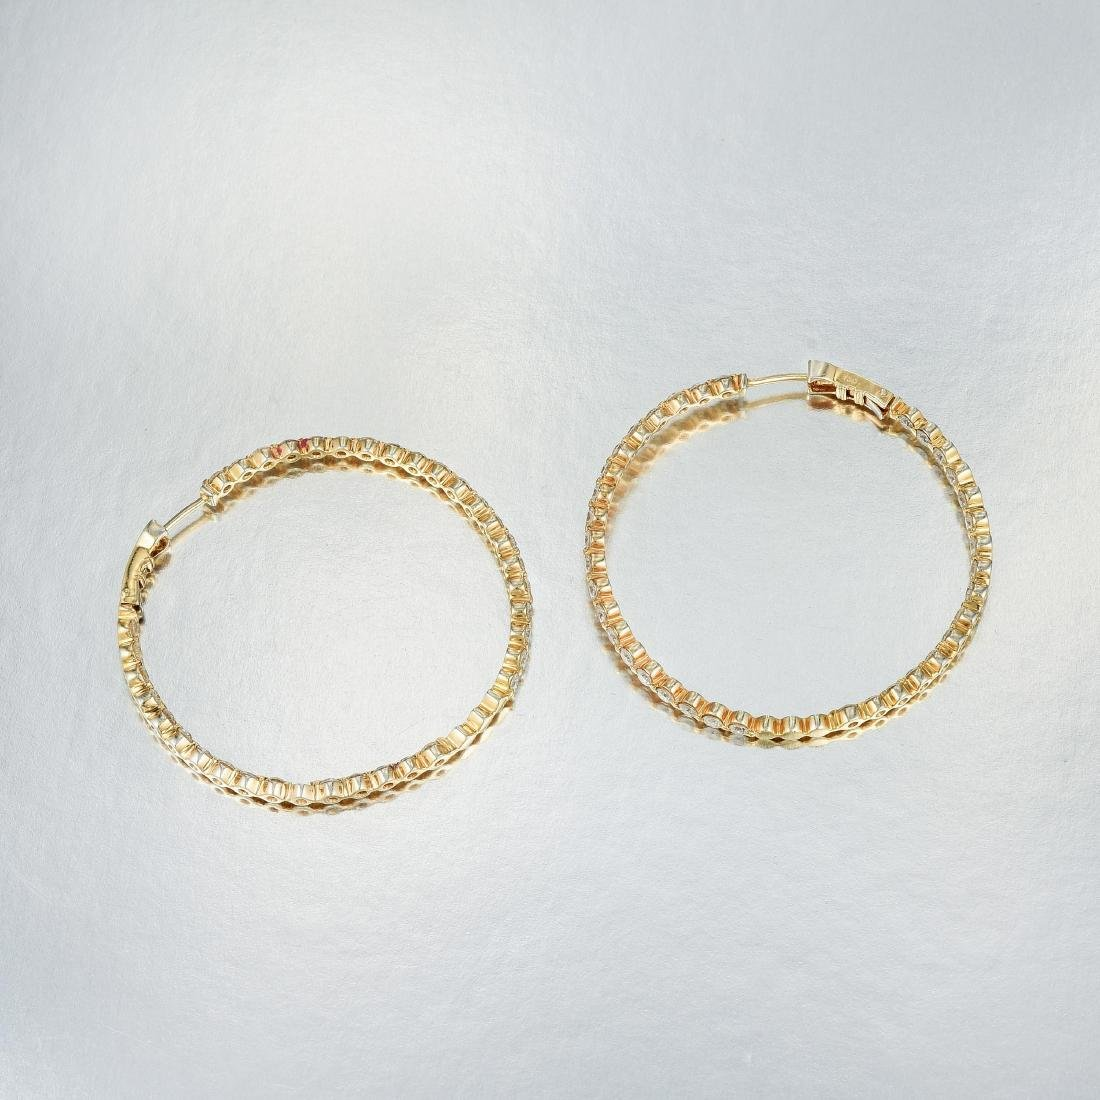 A Pair of Diamond Hoop Earrings - 2